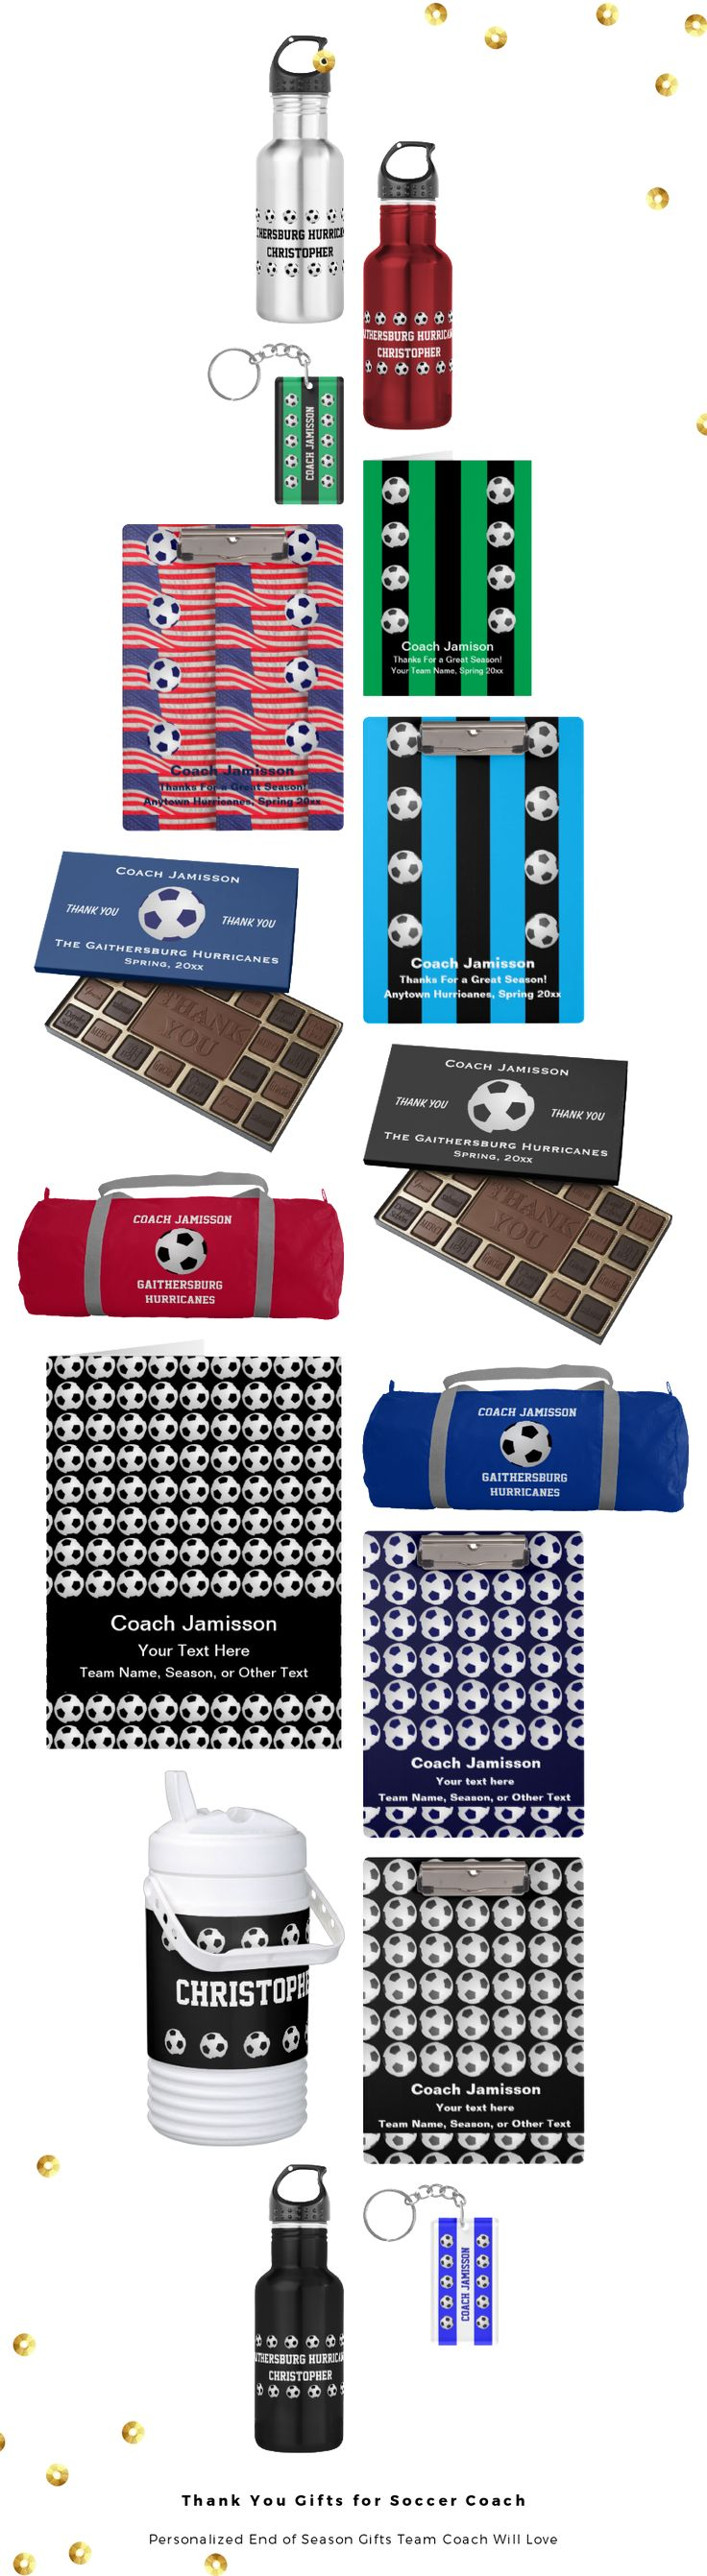 Unique Personalized Thank You Gifts for Soccer Coach